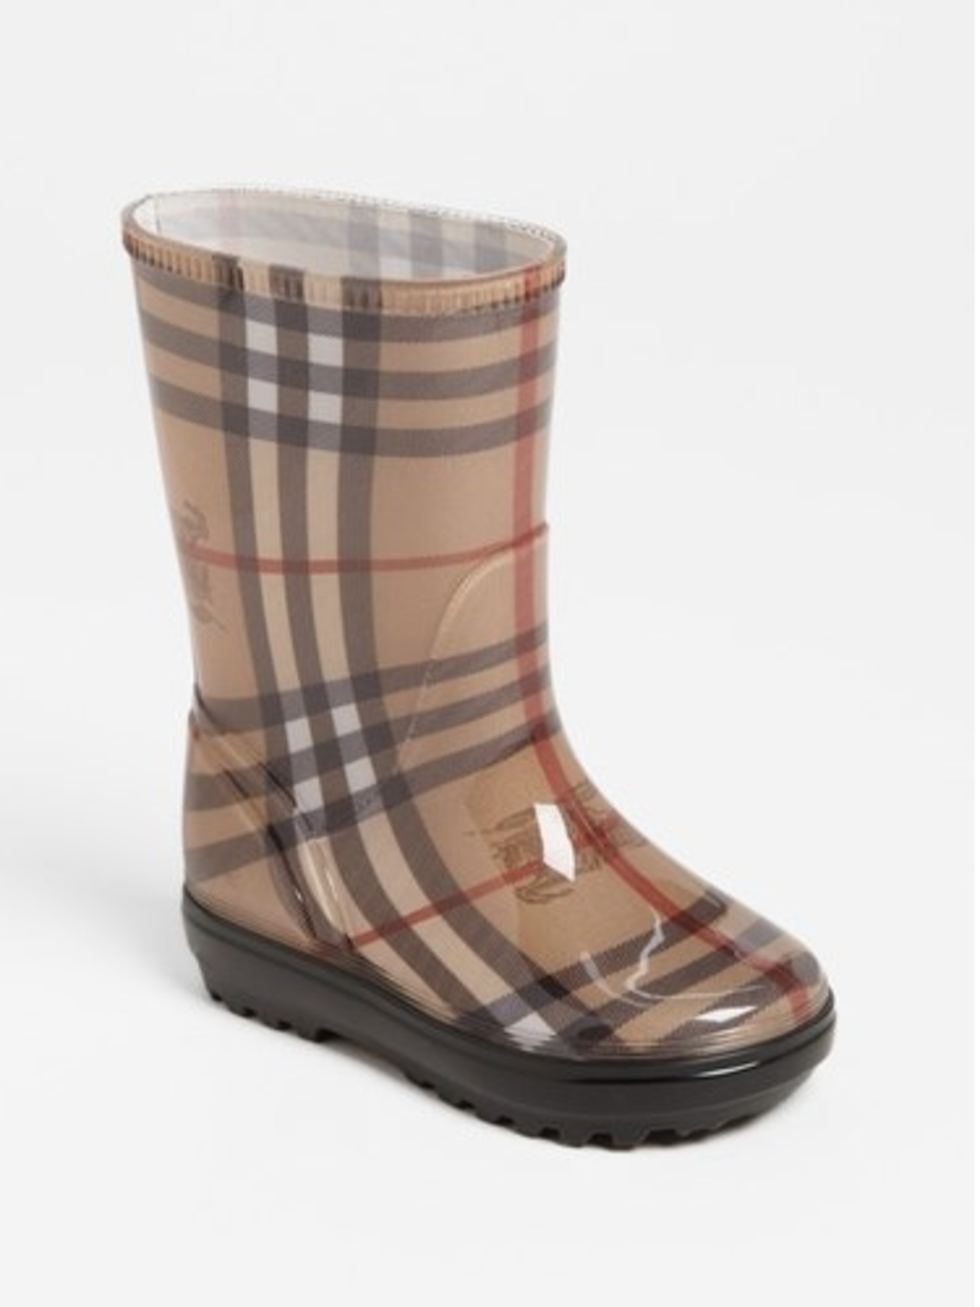 Rain boots, Burberry, $150, babies to age 12